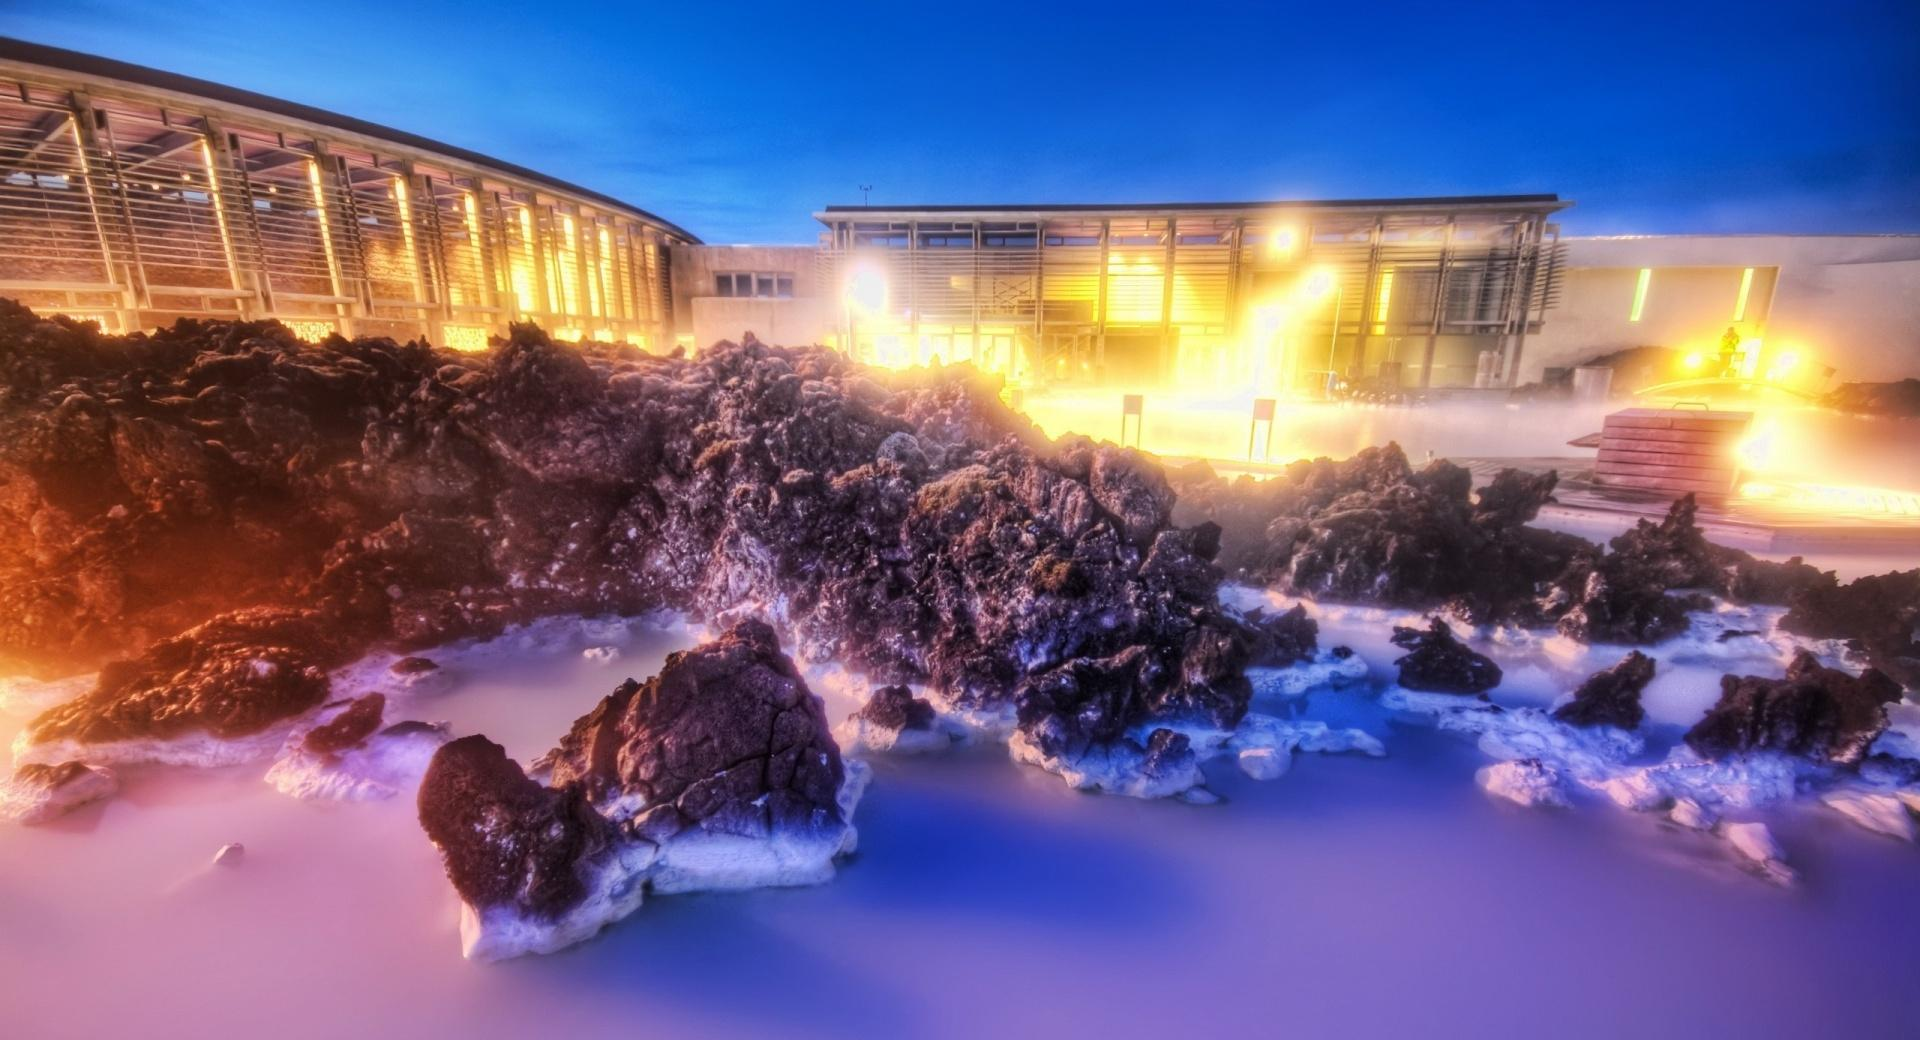 The Milky White Geothermal Occurrence wallpapers HD quality